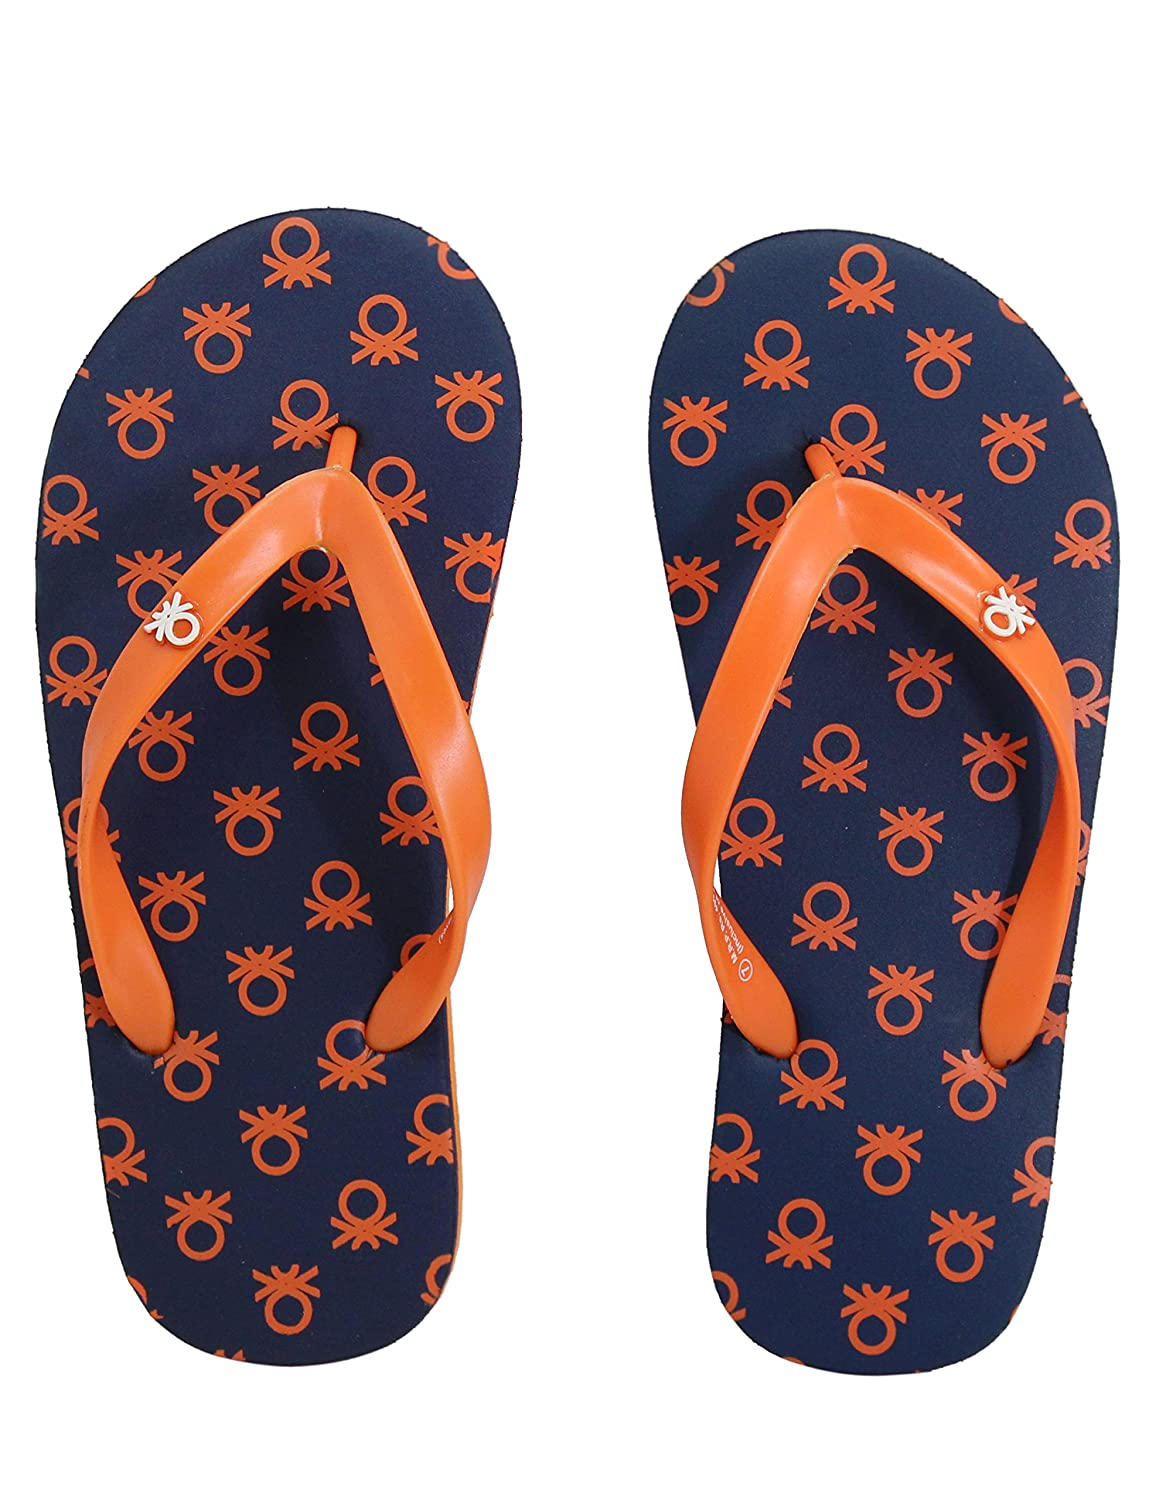 b11e271f3f3d6b United Colors Benetton Navy   Orange Flipflops for Men  Buy Online at Low  Prices in India - Amazon.in